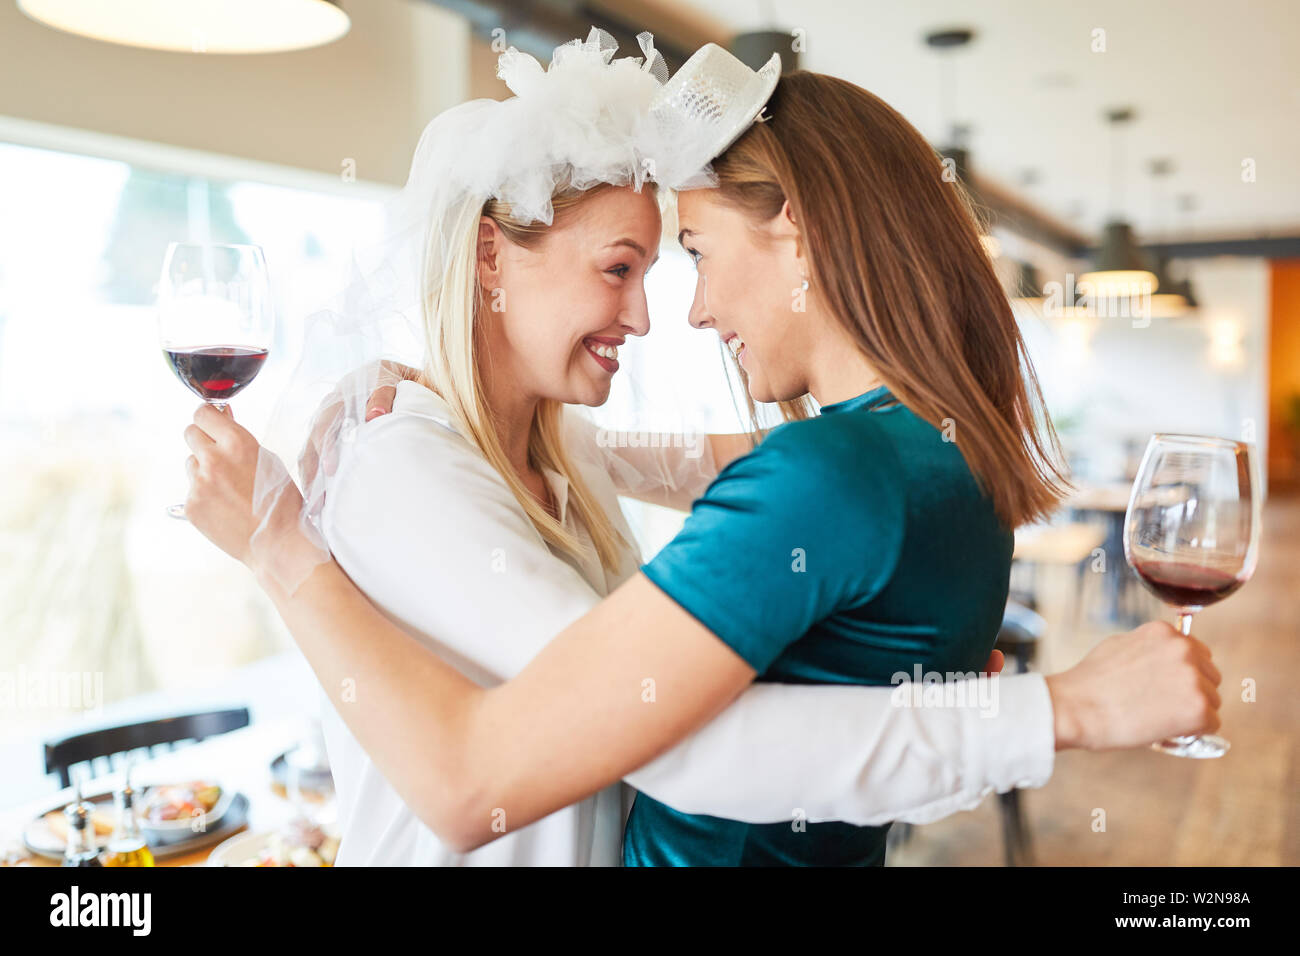 Happy young woman with bridal veil hugs her best friend in the restaurant - Stock Image